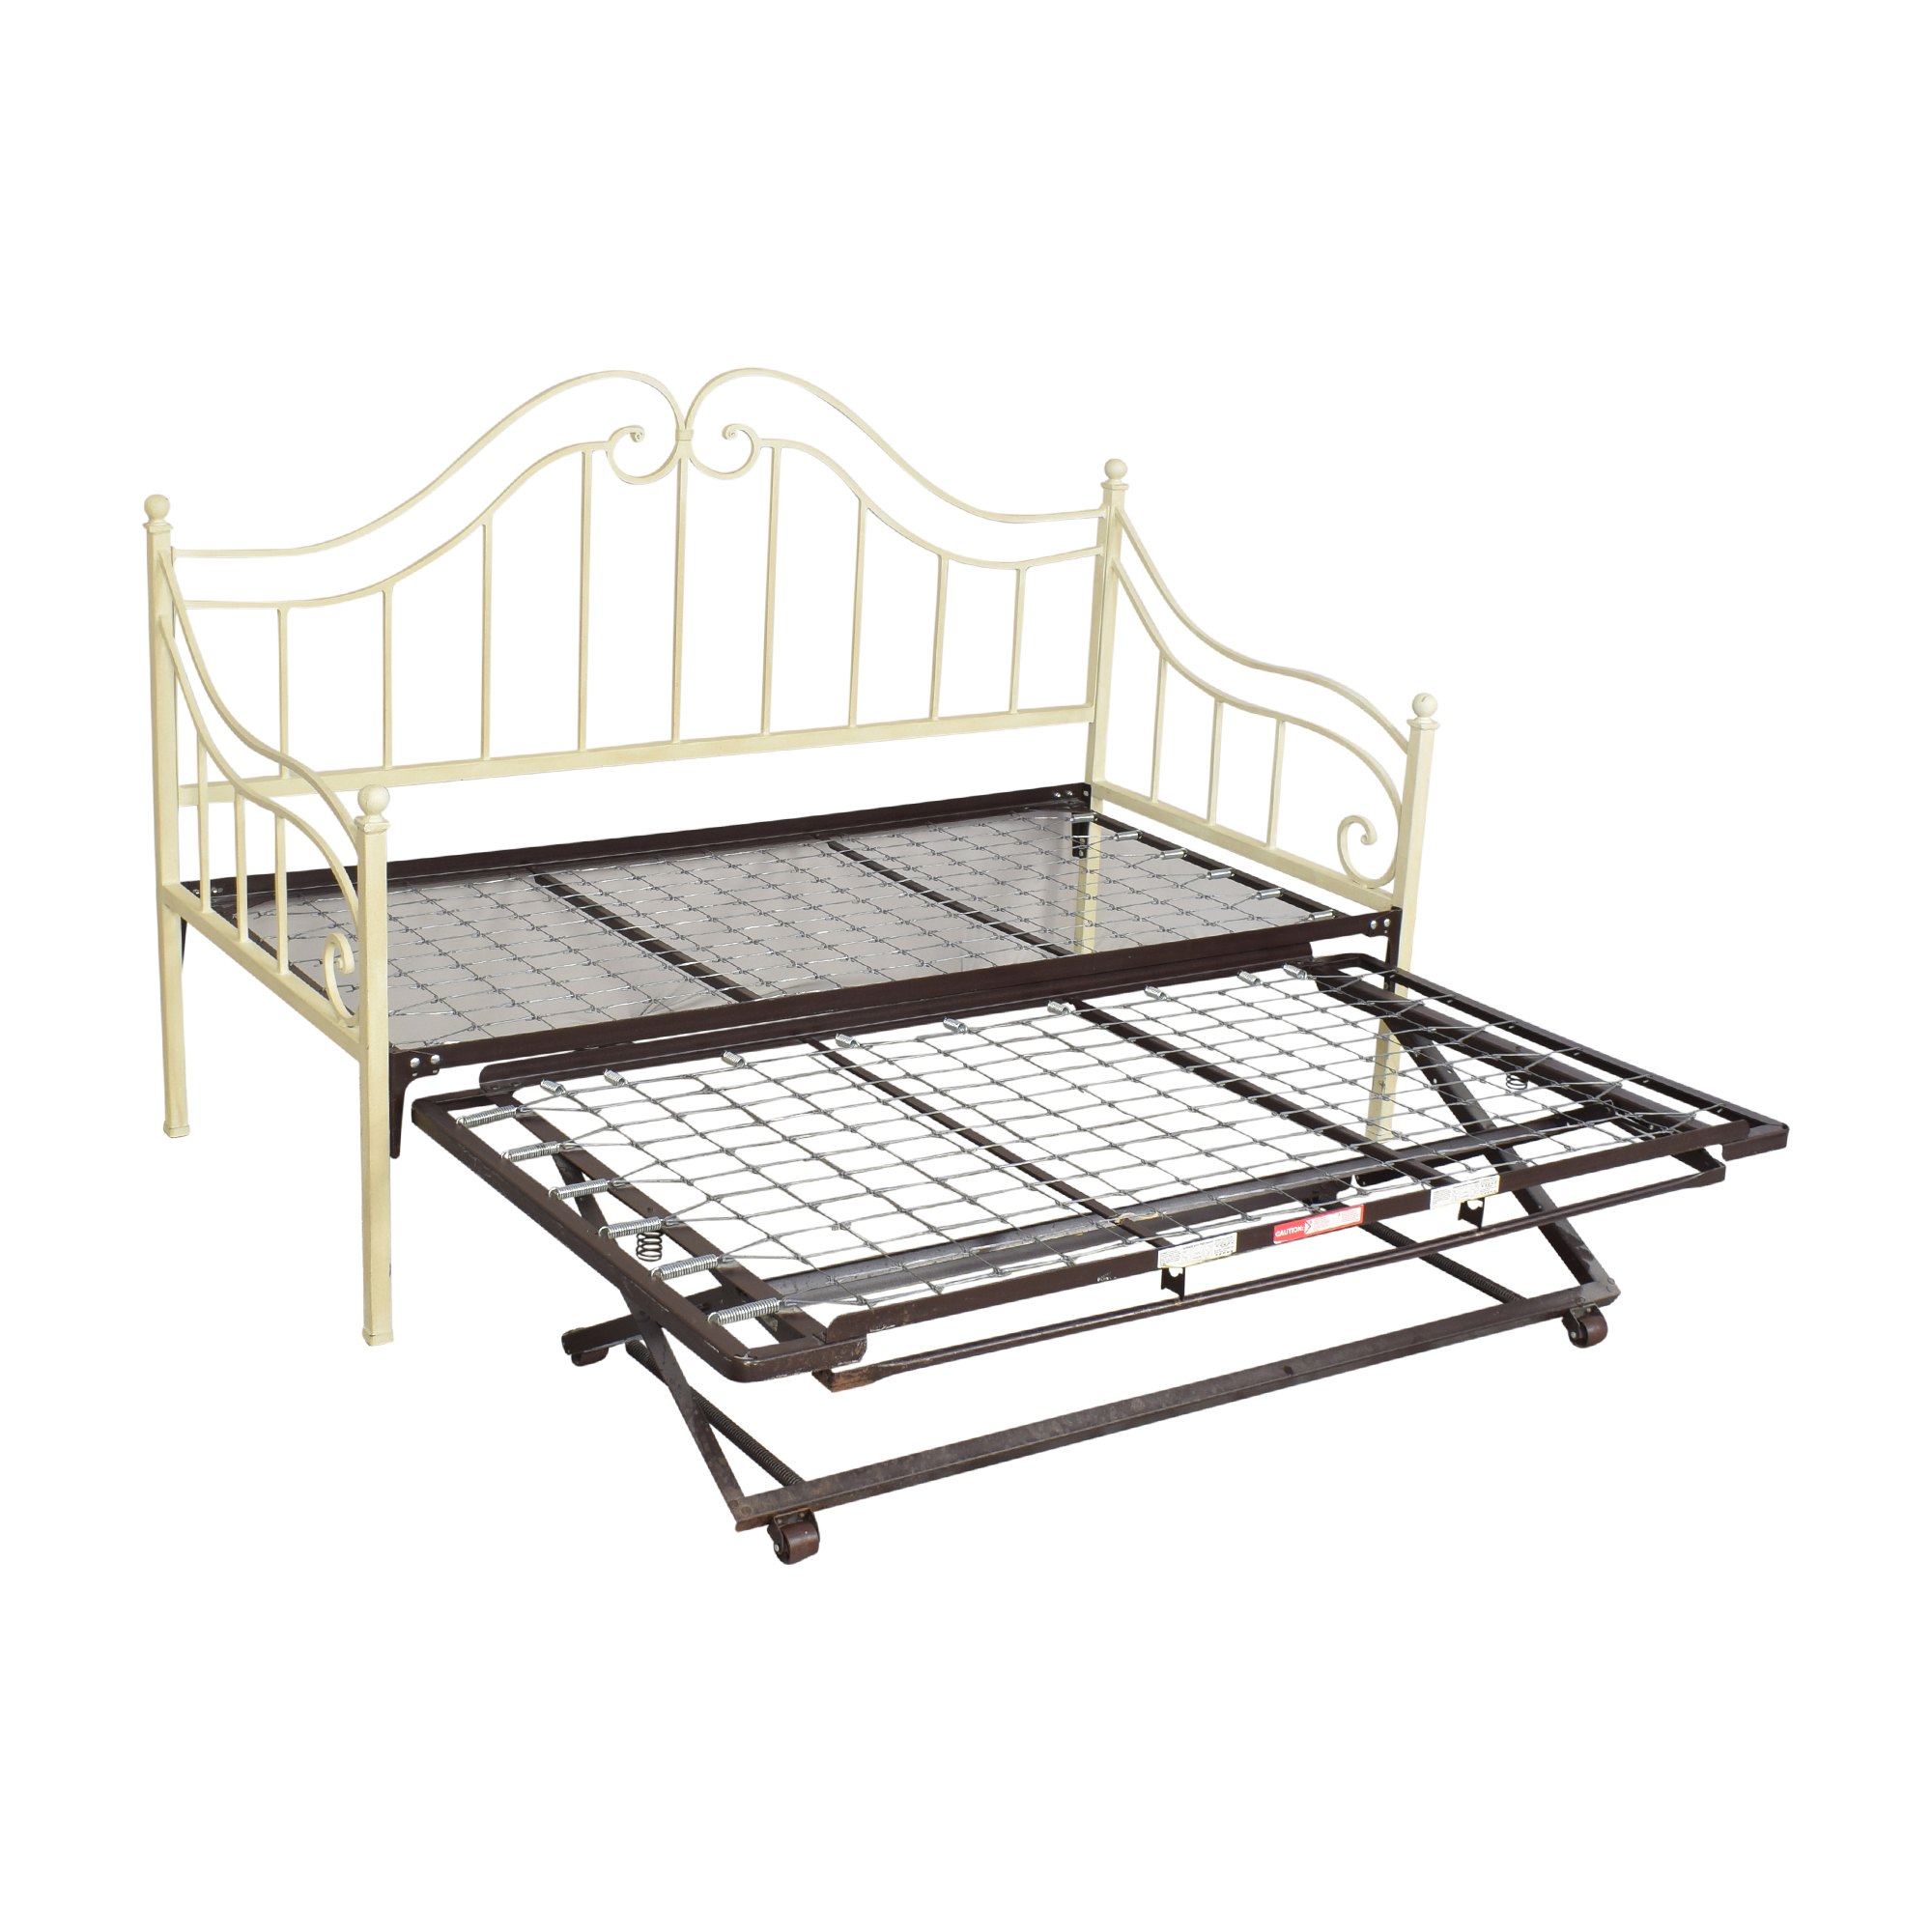 Ethan Allen Ethan Allen Openwork Twin Trundle Daybed used